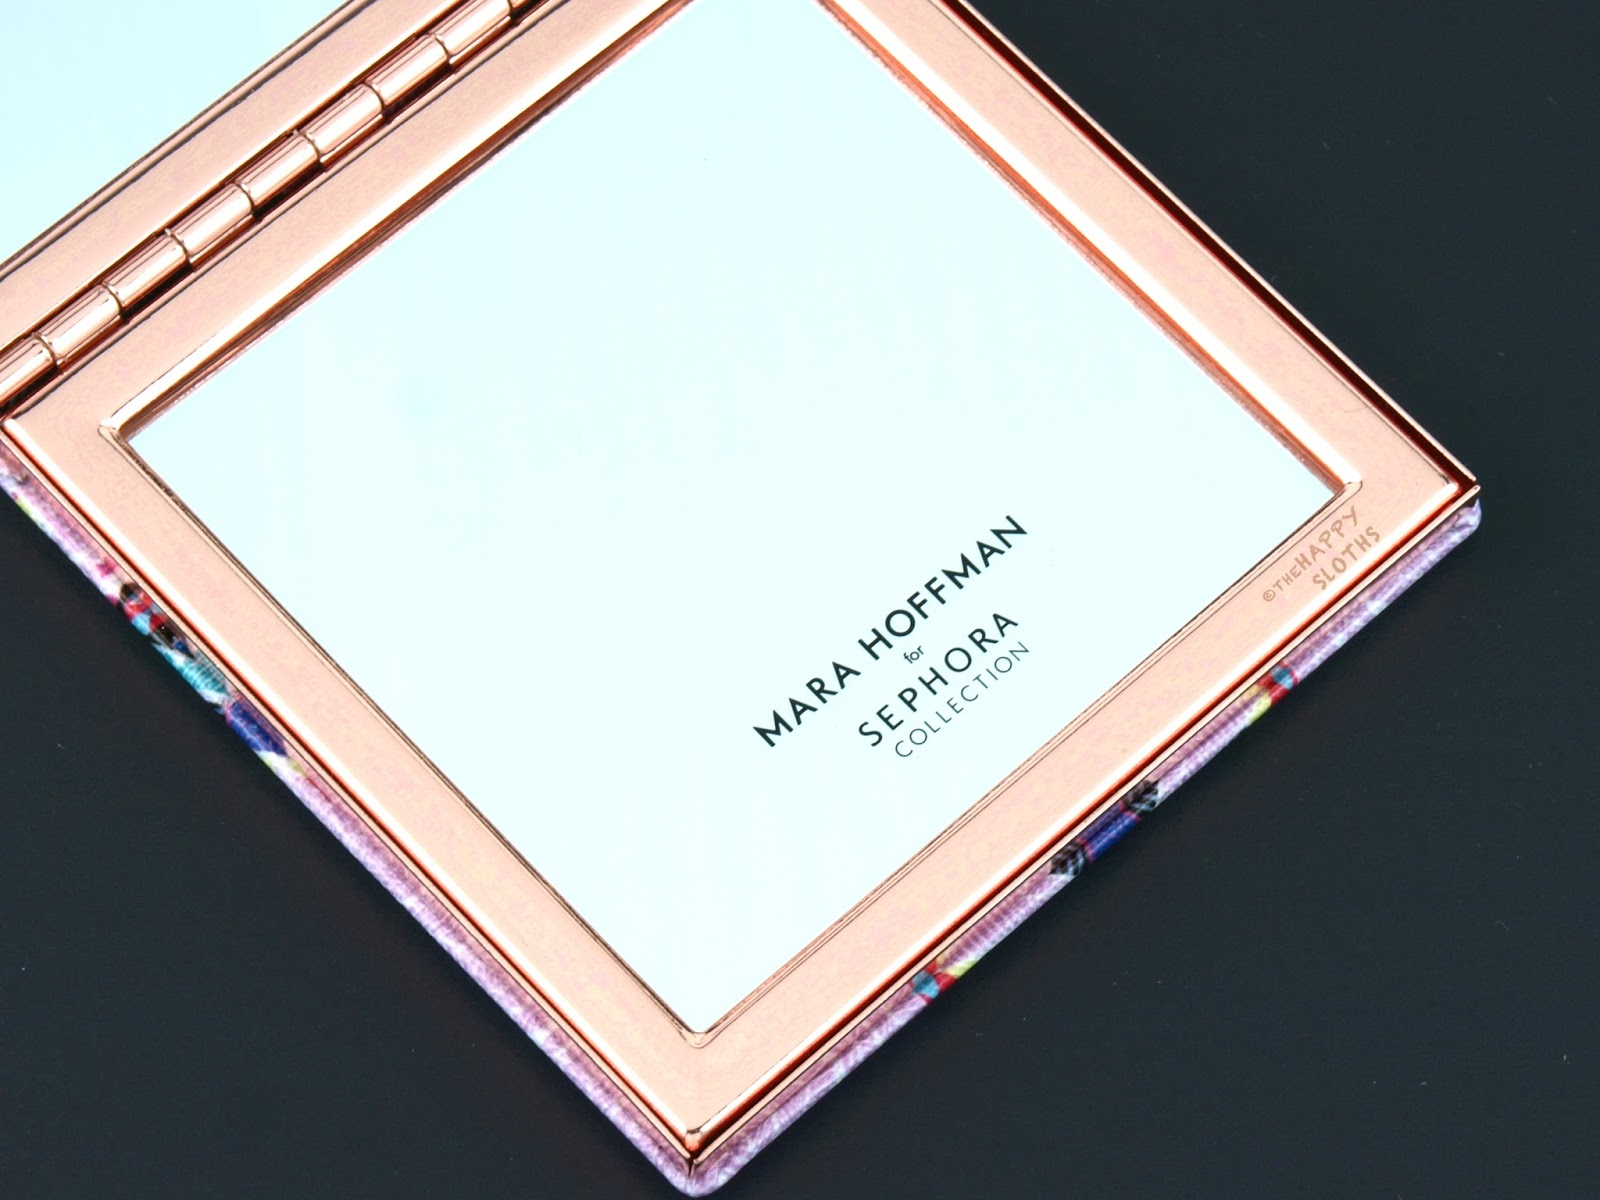 sephora compact mirror. sephora mara hoffman kaleidescape compact mirror ($20 cad): this is a beautiful about the size of small eyeshadow quad.